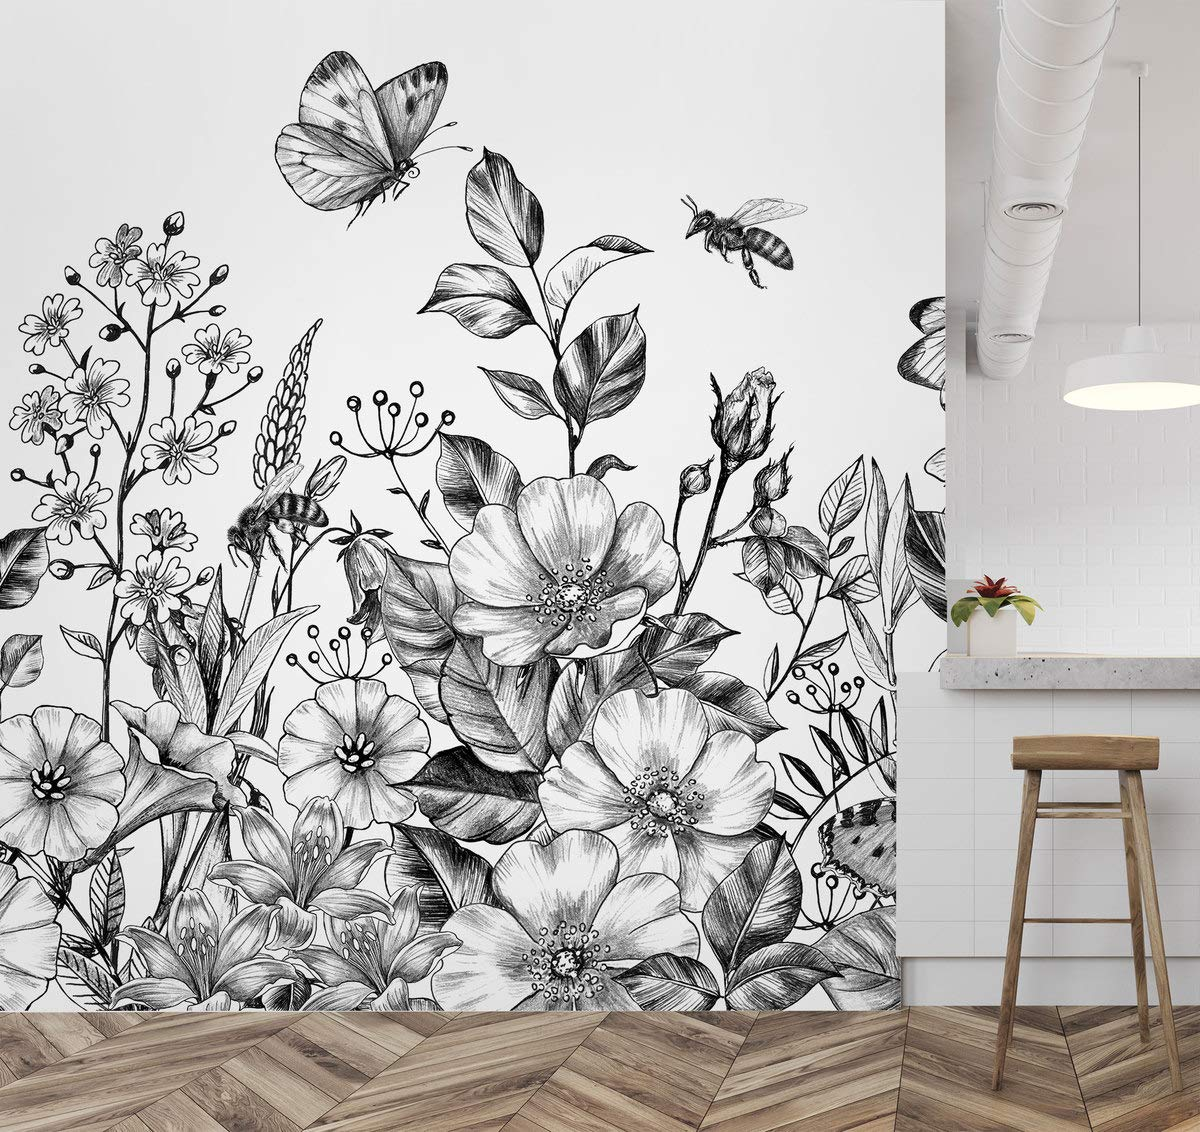 Amazon Com Murwall Floral Wallpaper Black And White Flower Wall Mural Charcoal Floral Wallpaper Living Room Bedroom Cafe Handmade Products